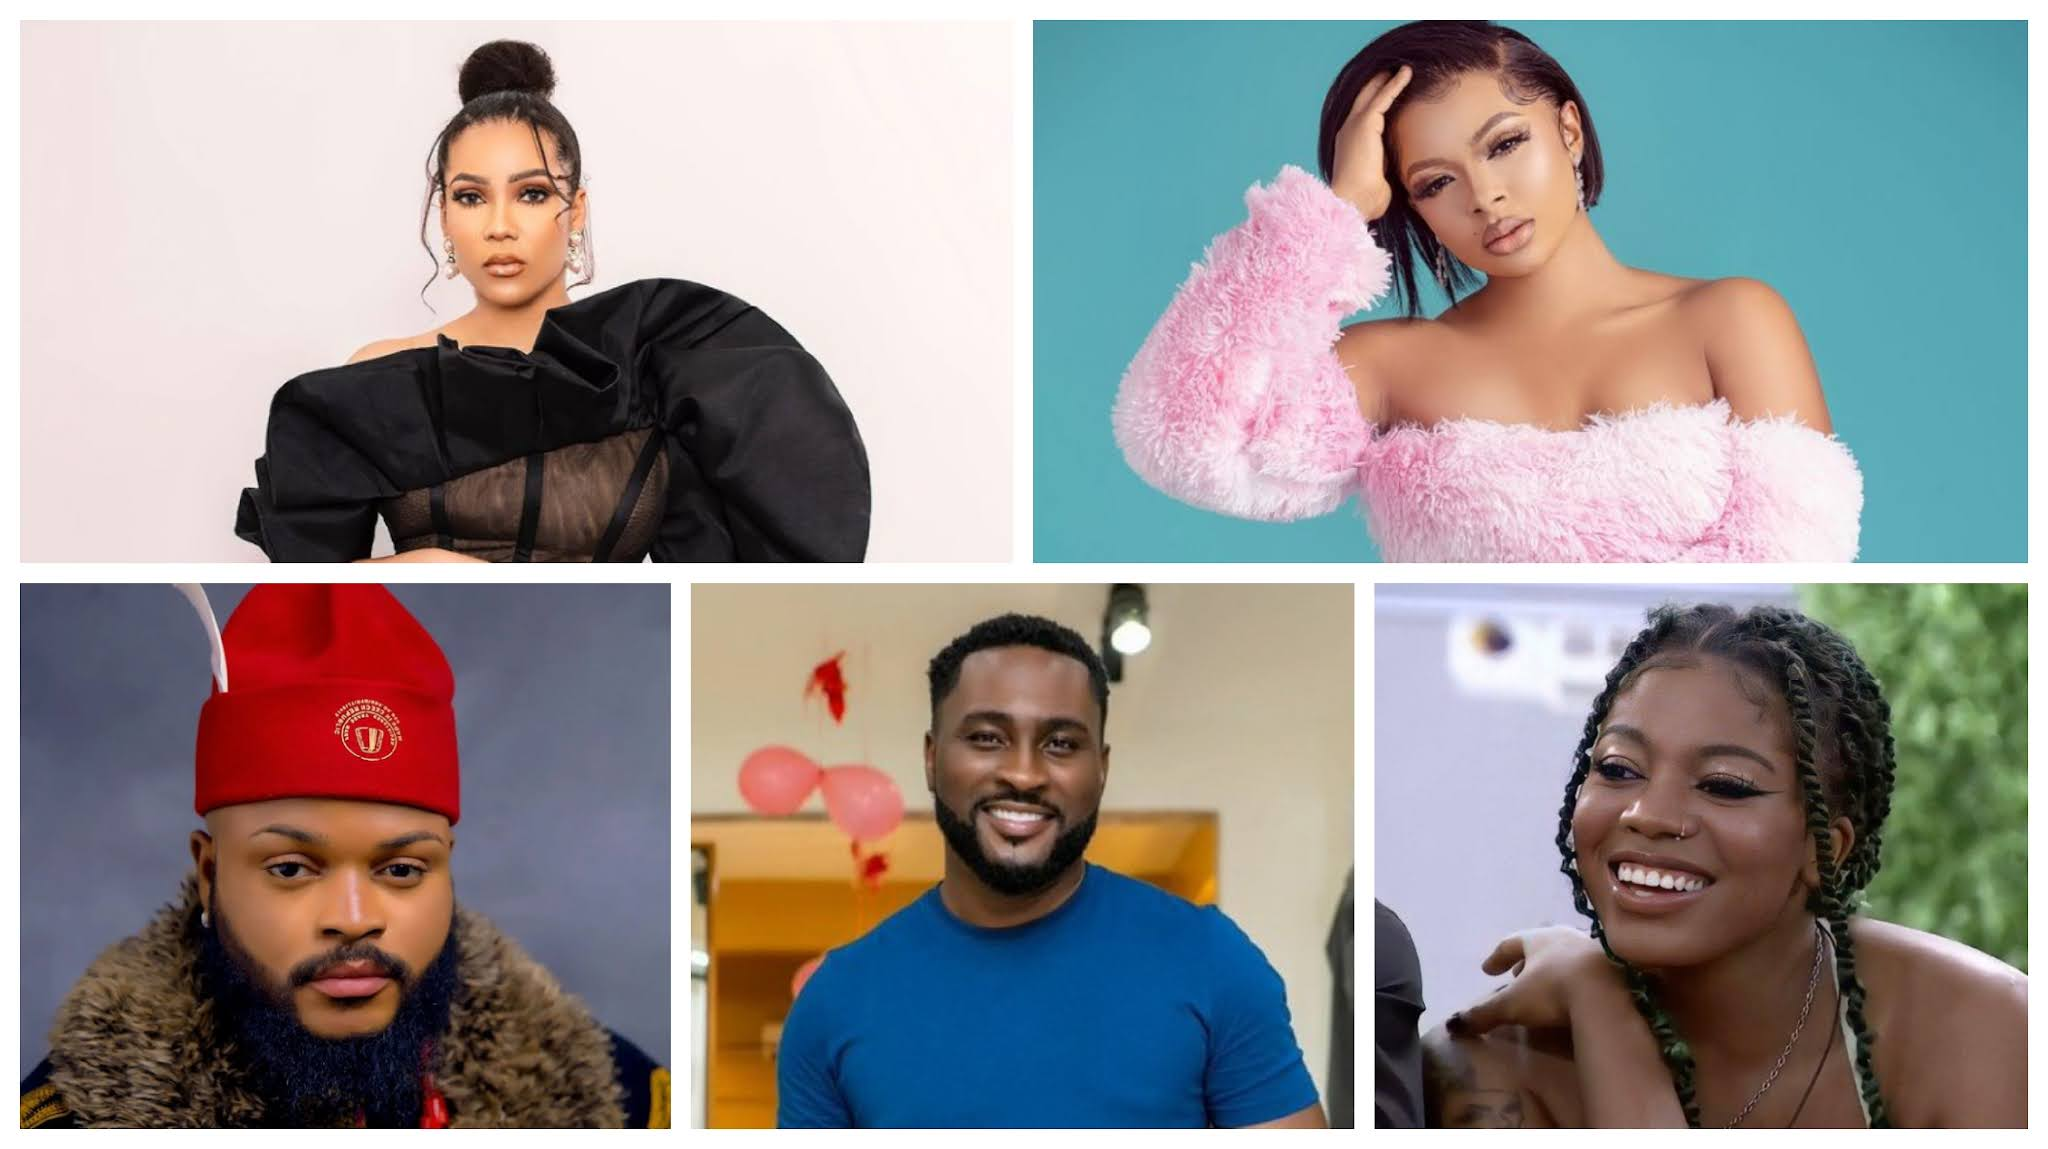 BBNaija: Pere emerges the 5th most followed housemate on Instagram, check who is first, second, third, and fourth